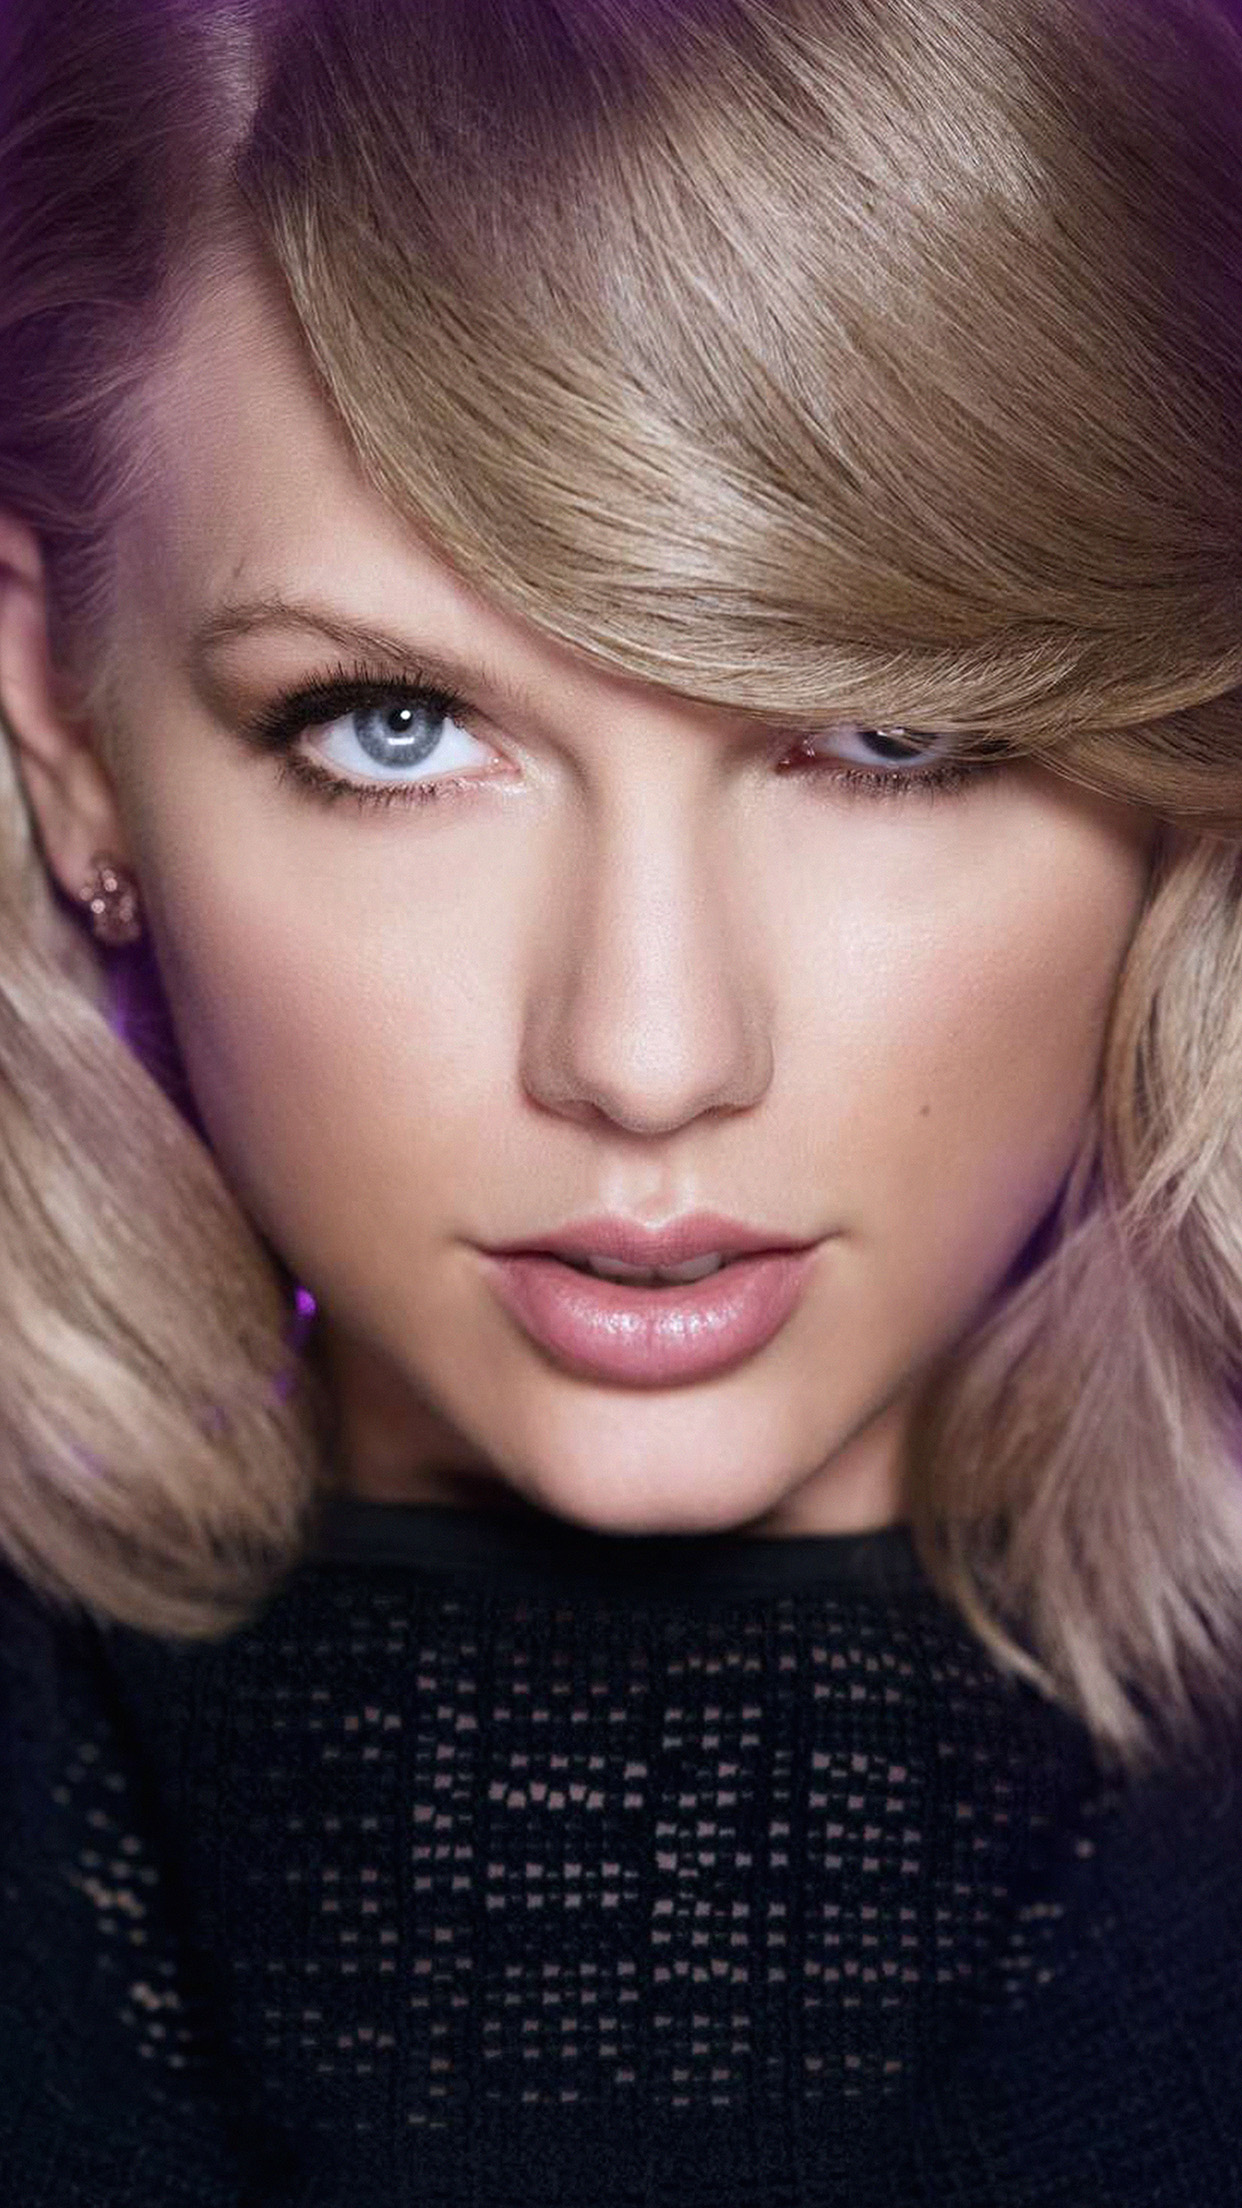 Taylor Swift Face Music Celebrity Android wallpaper - Android HD wallpapers